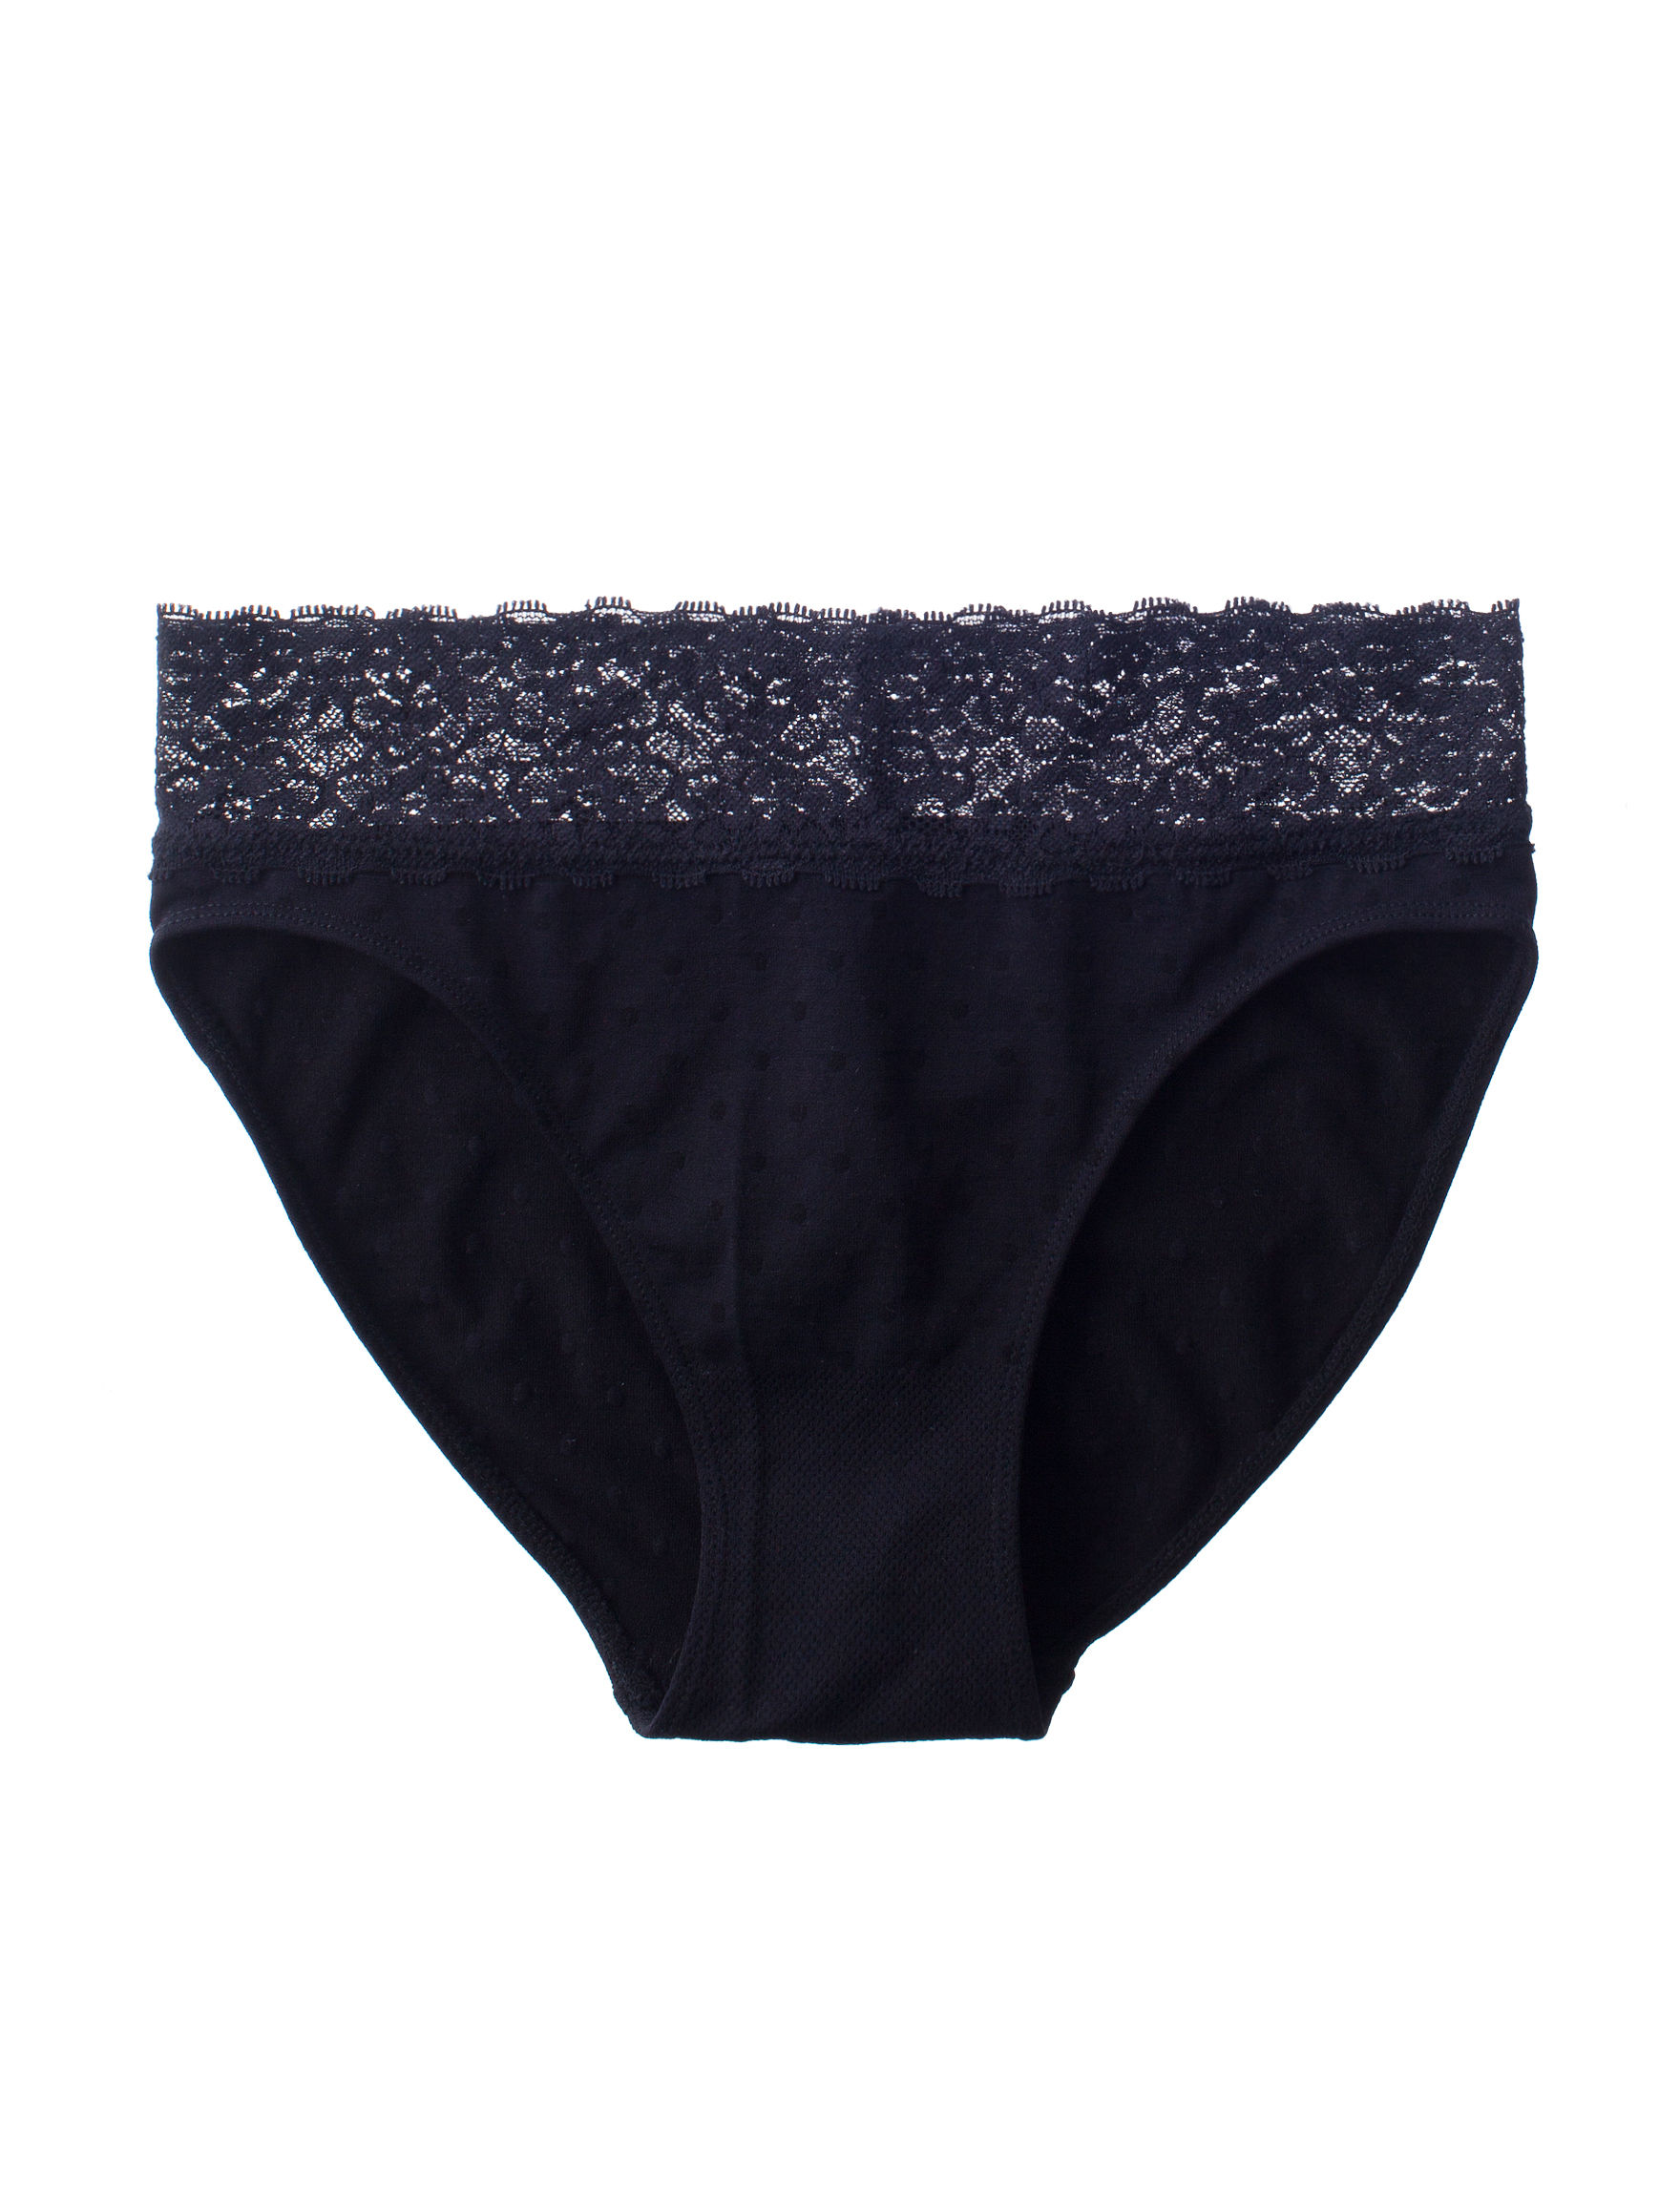 Rene Rofe Black Panties Briefs High Cut Seamless